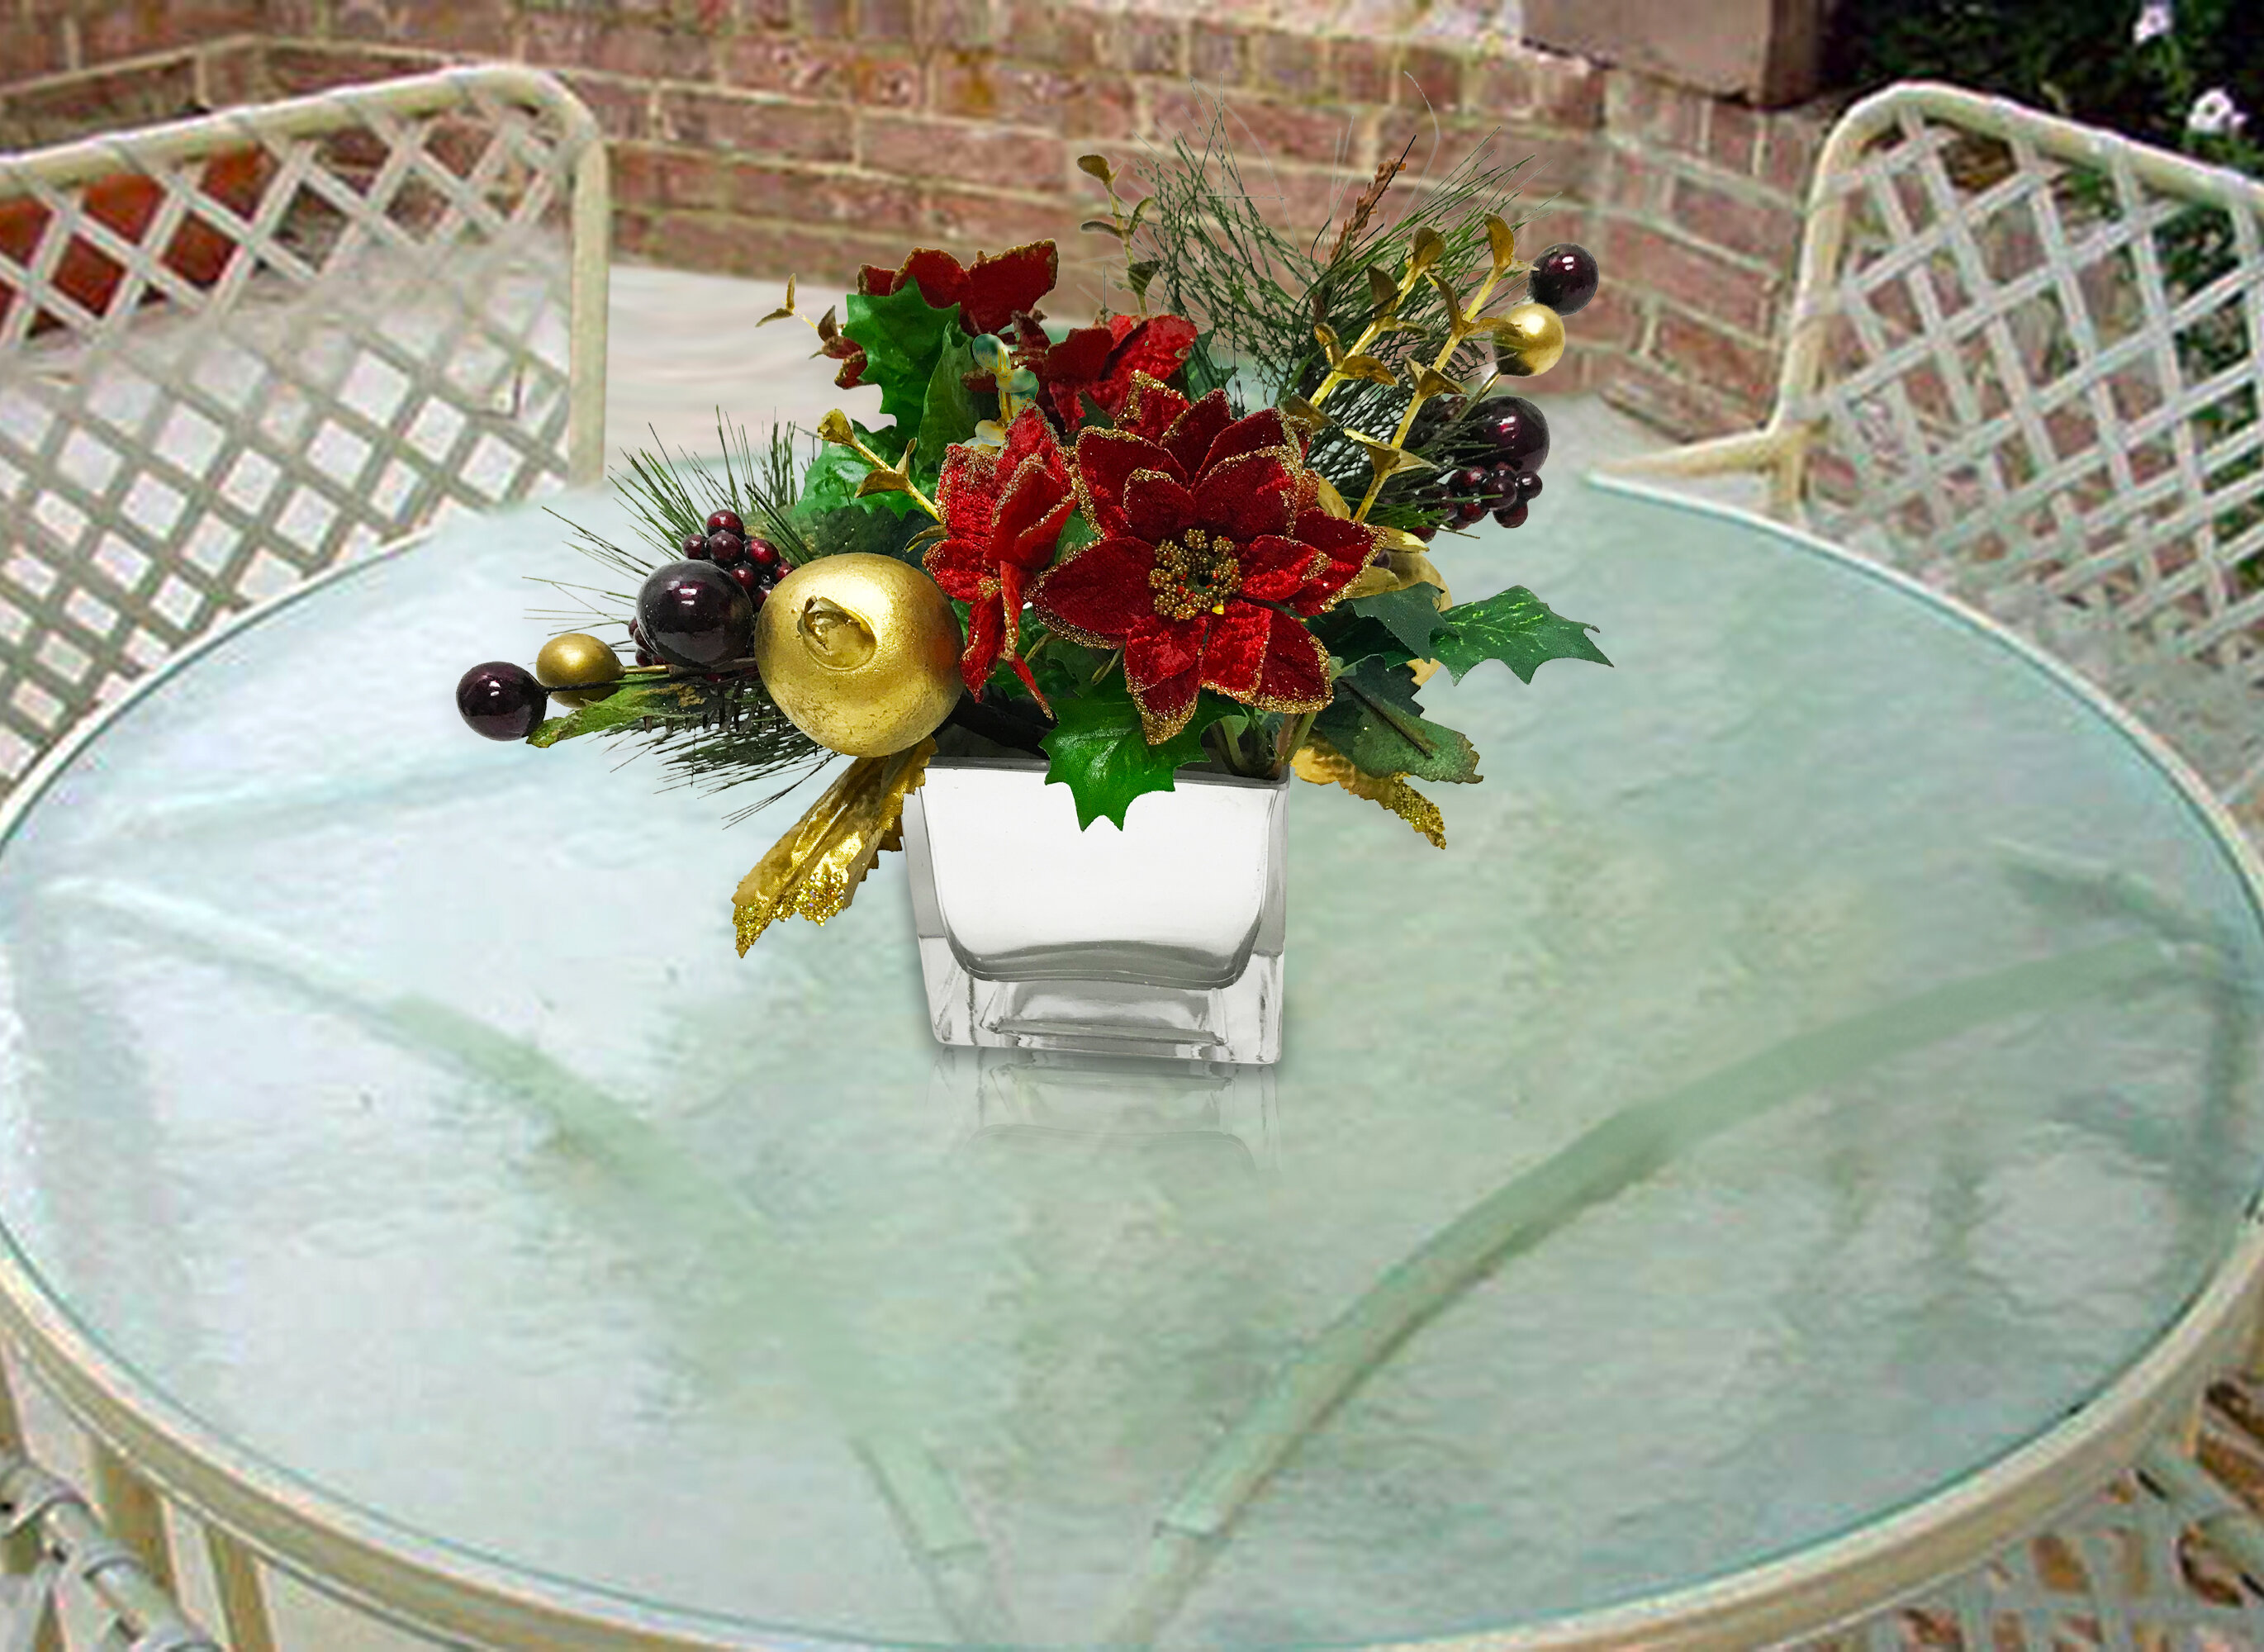 The Holiday Aisle Festive Sparkly Poinsettia Floral Arrangement And Centerpiece In Pot Reviews Wayfair